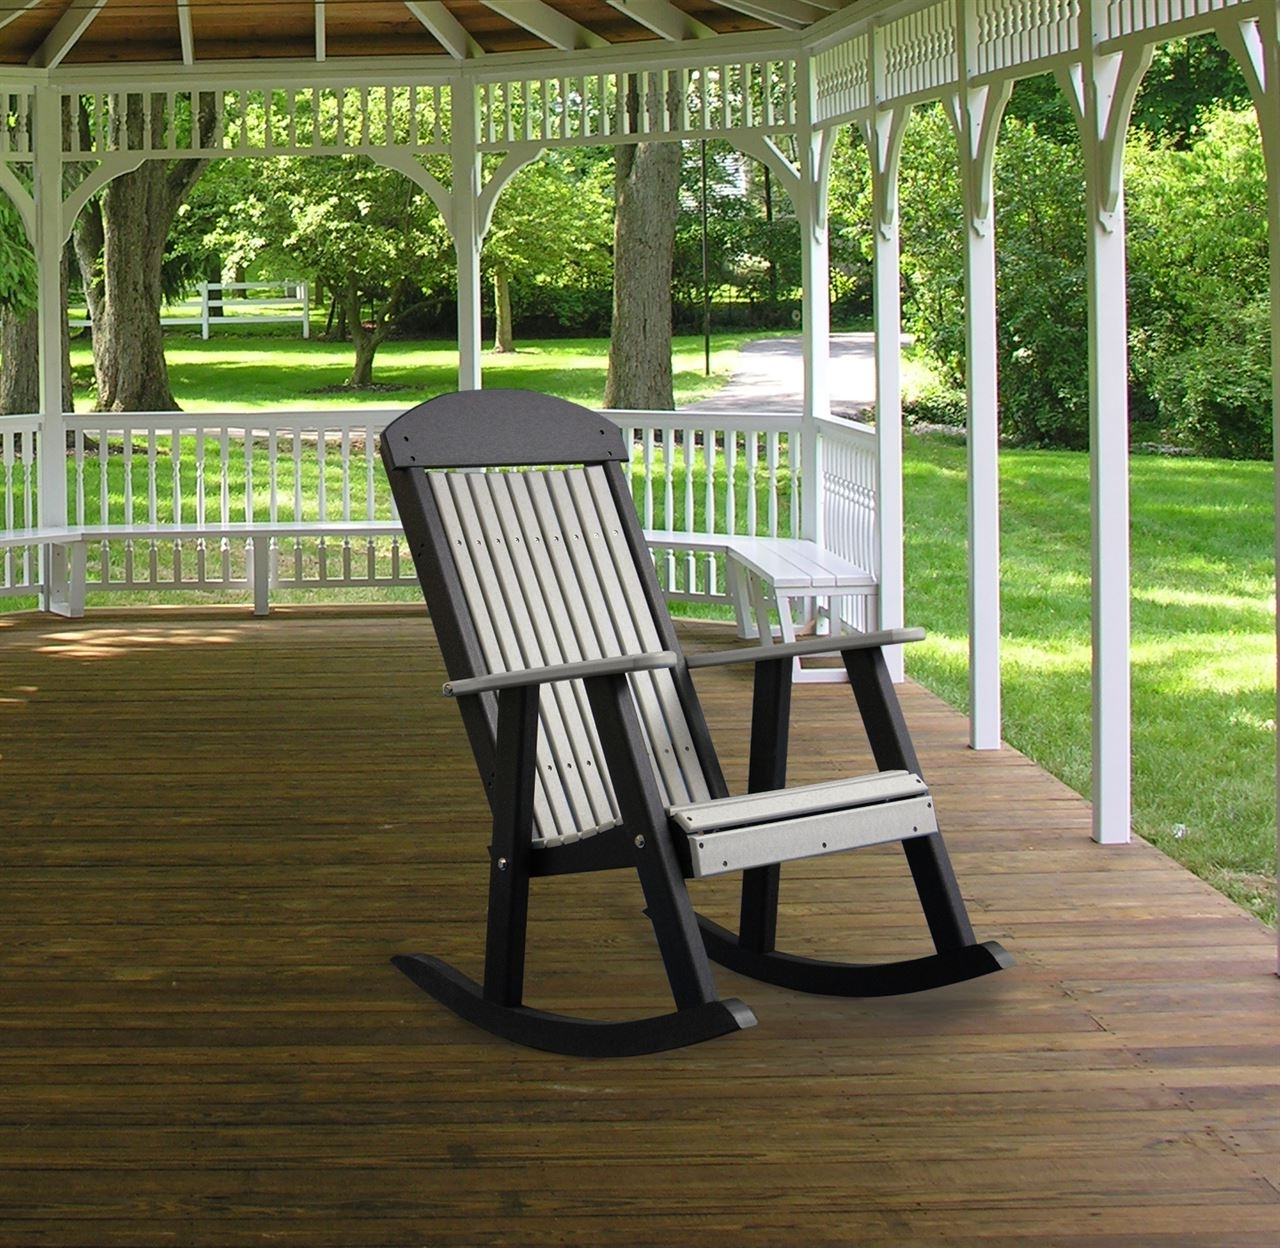 Vermont Teak Rocking Chair Cambridge Casual Frank Reenskaug Outdoor Throughout 2018 Rocking Chairs For Porch (View 15 of 15)